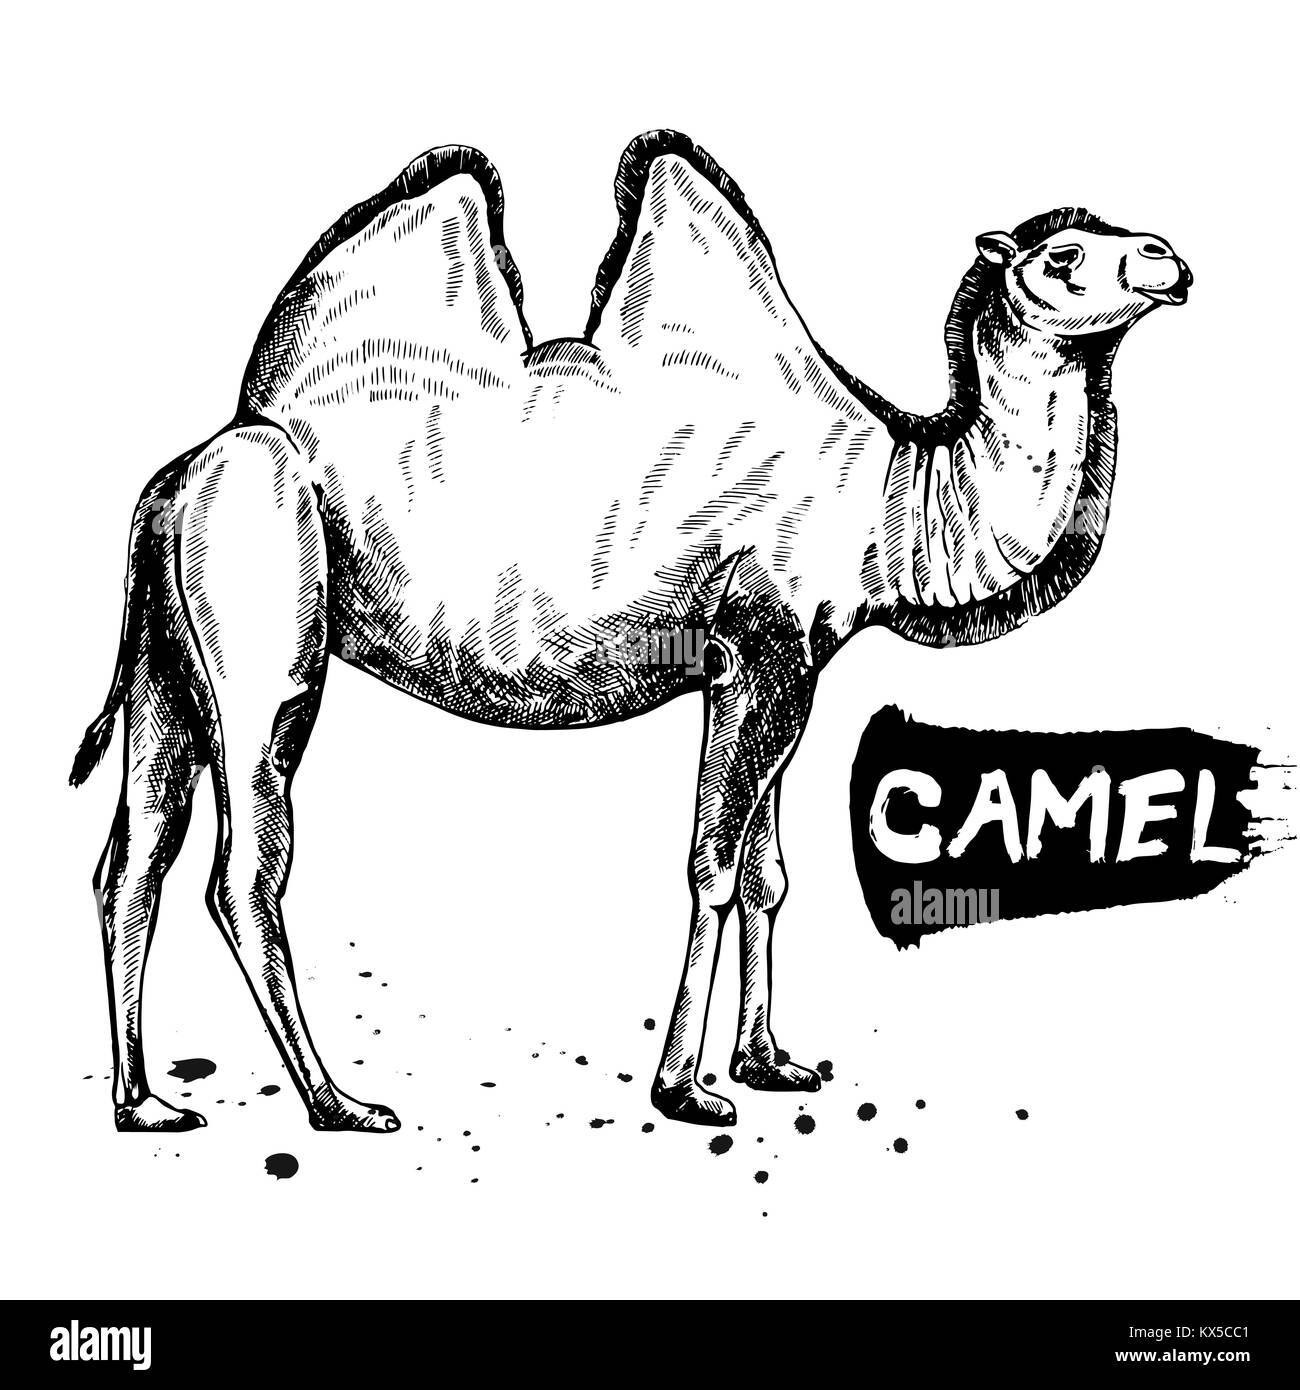 Hand drawn sketch style camel. Vector illustration isolated on white background. - Stock Vector